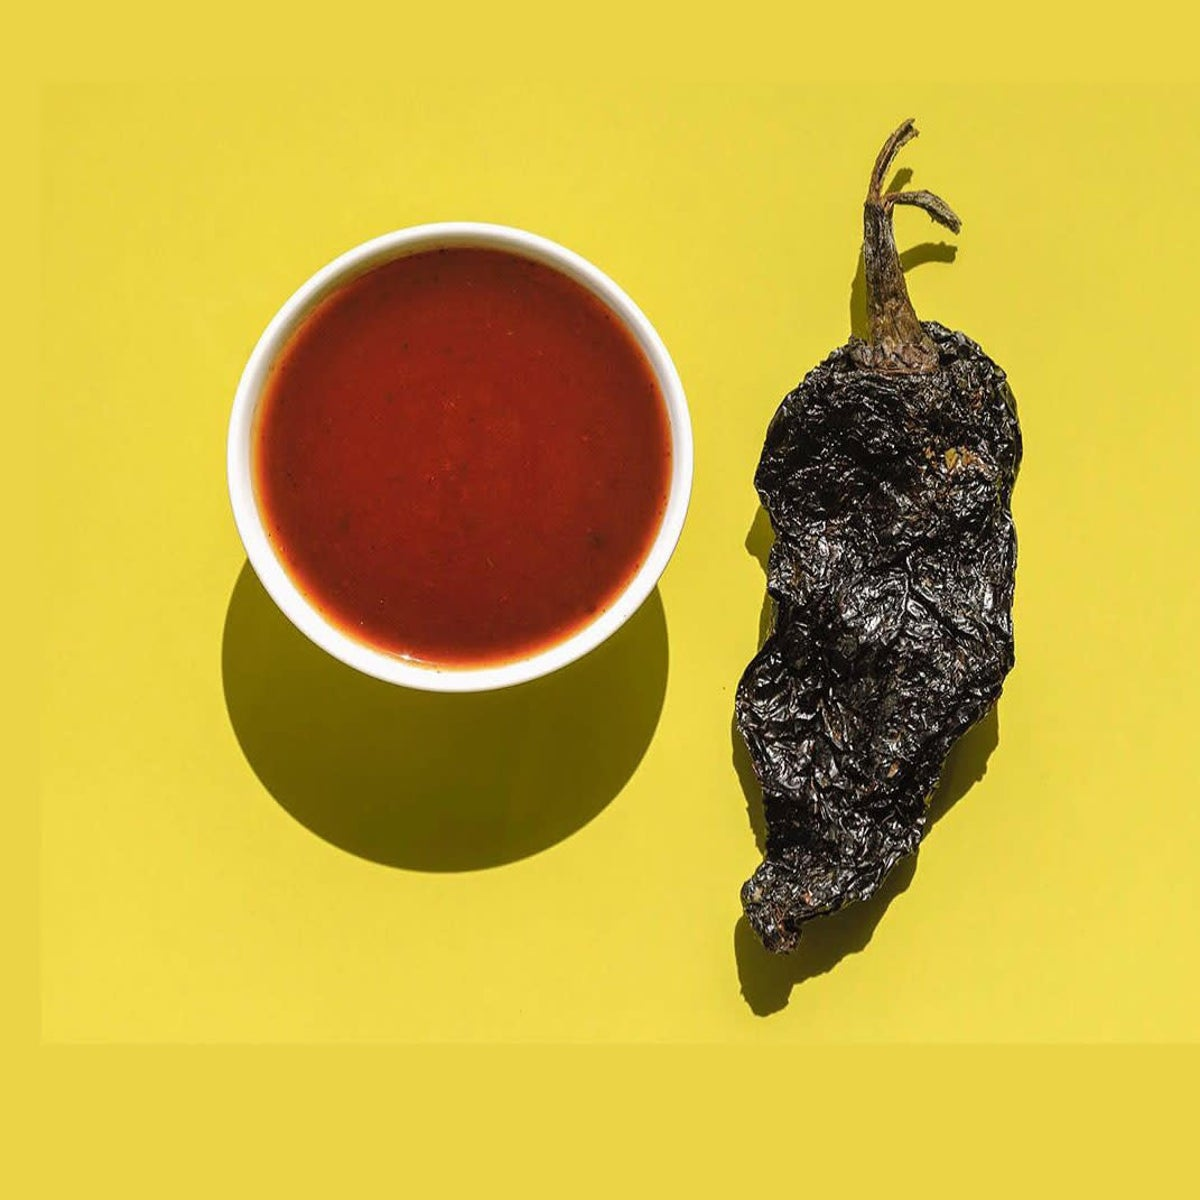 Eli Kremer's spicy sauces are based mainly on the habanero chili pepper